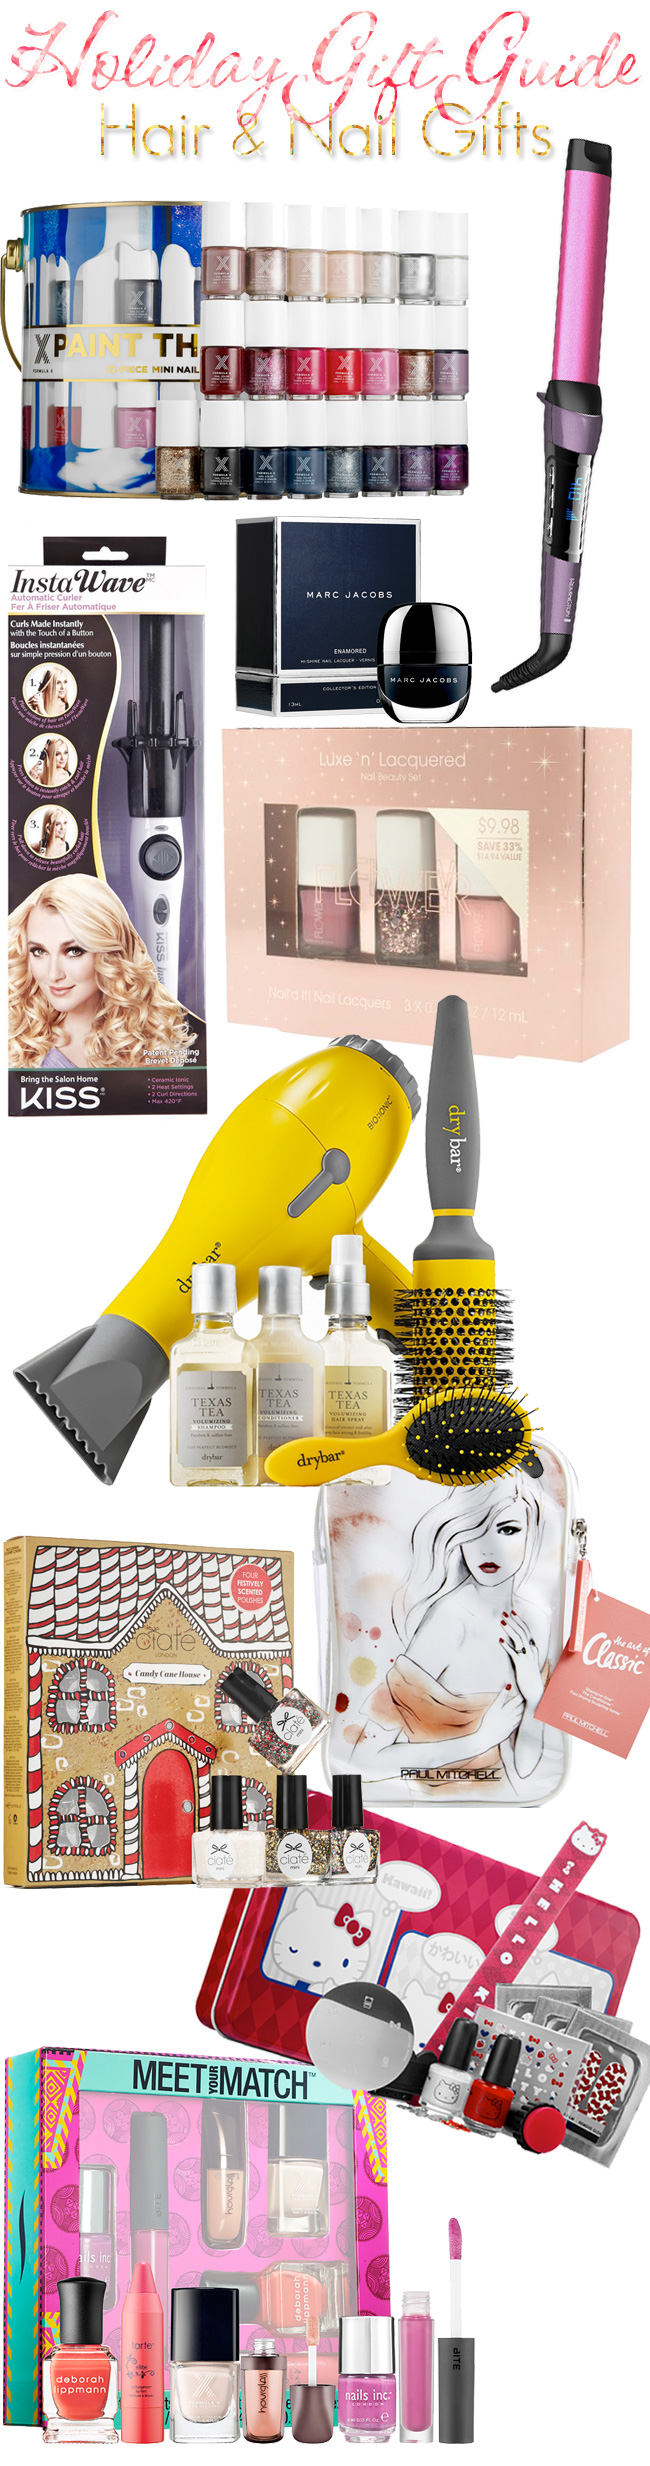 Holiday Gift Guide: The Best Hair & Nail Gifts